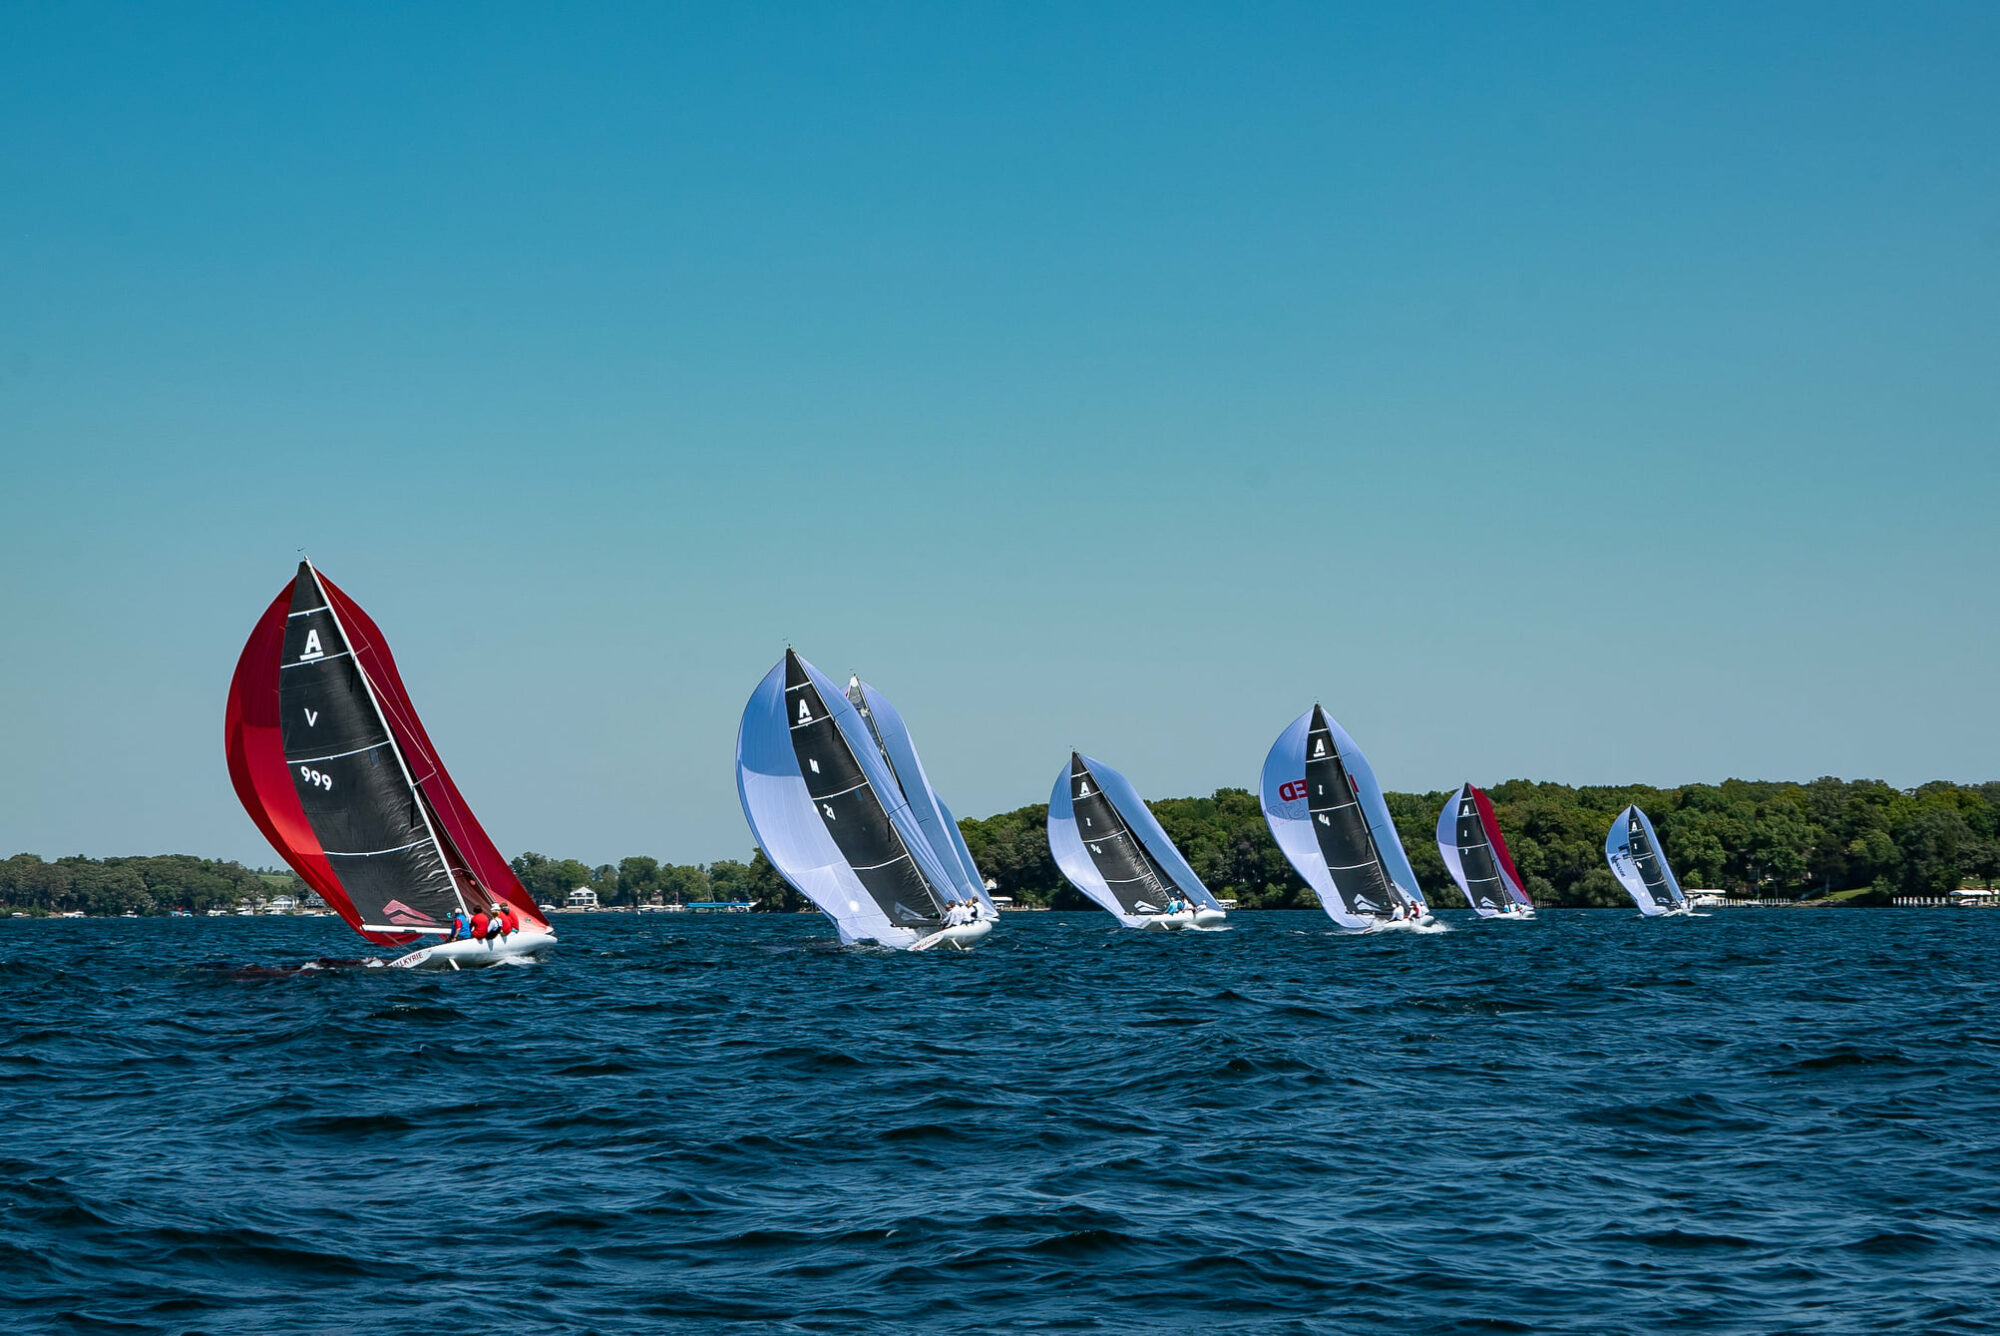 A Scow 3Di Mainsails Dominate the Inlands